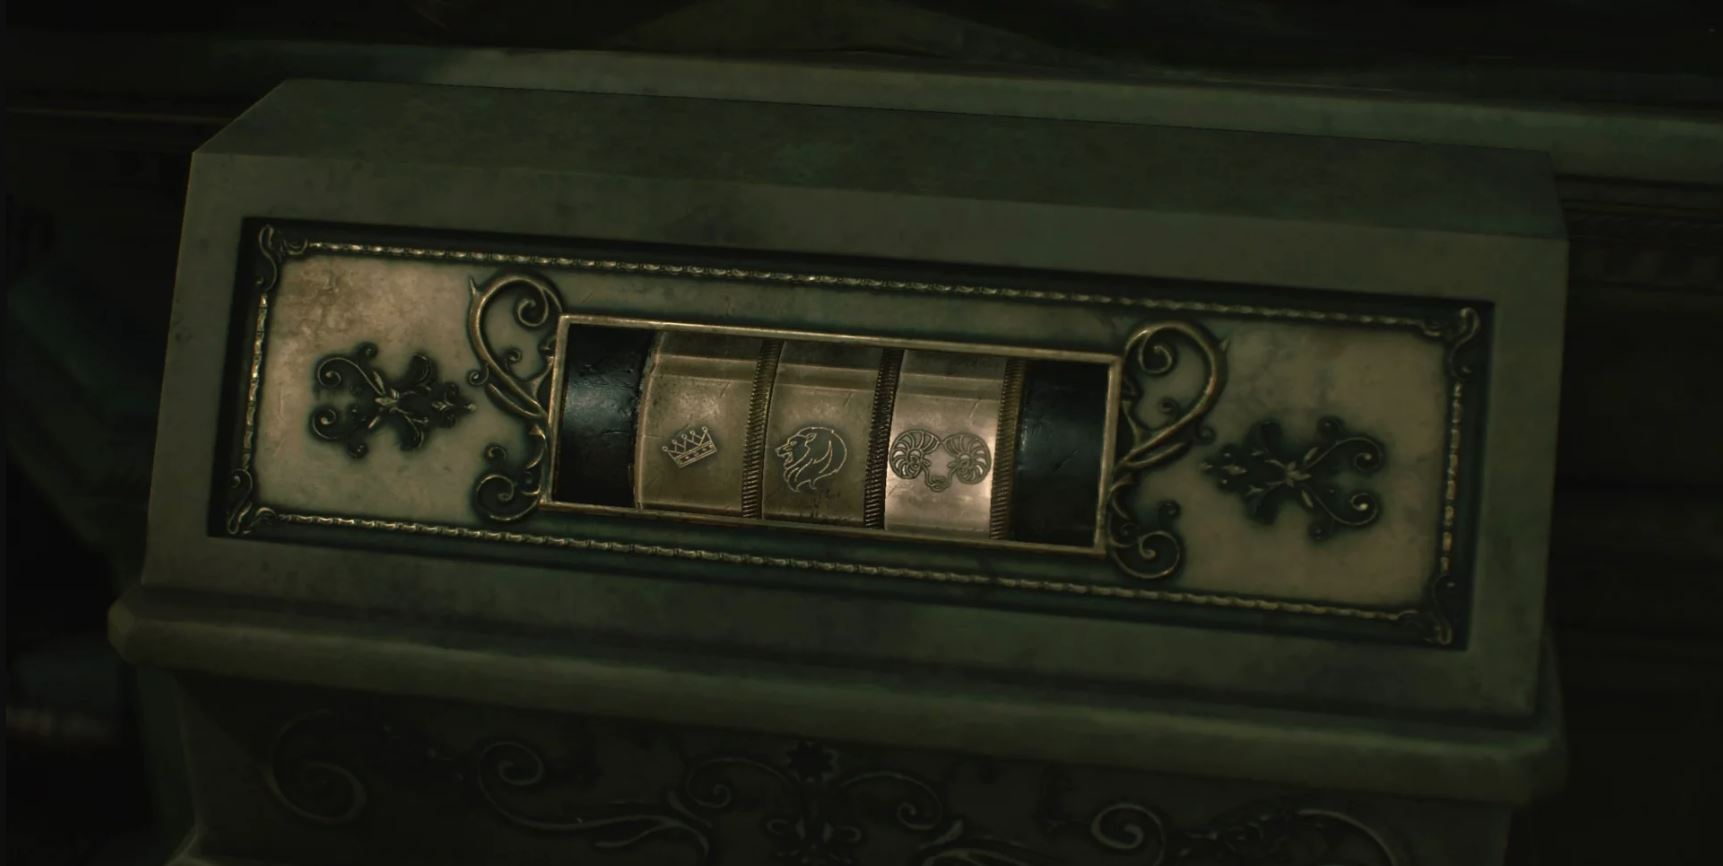 Input 3 symbols to solve the Lion Statue Puzzle in the 1-Shot demo for Resident Evil 2.